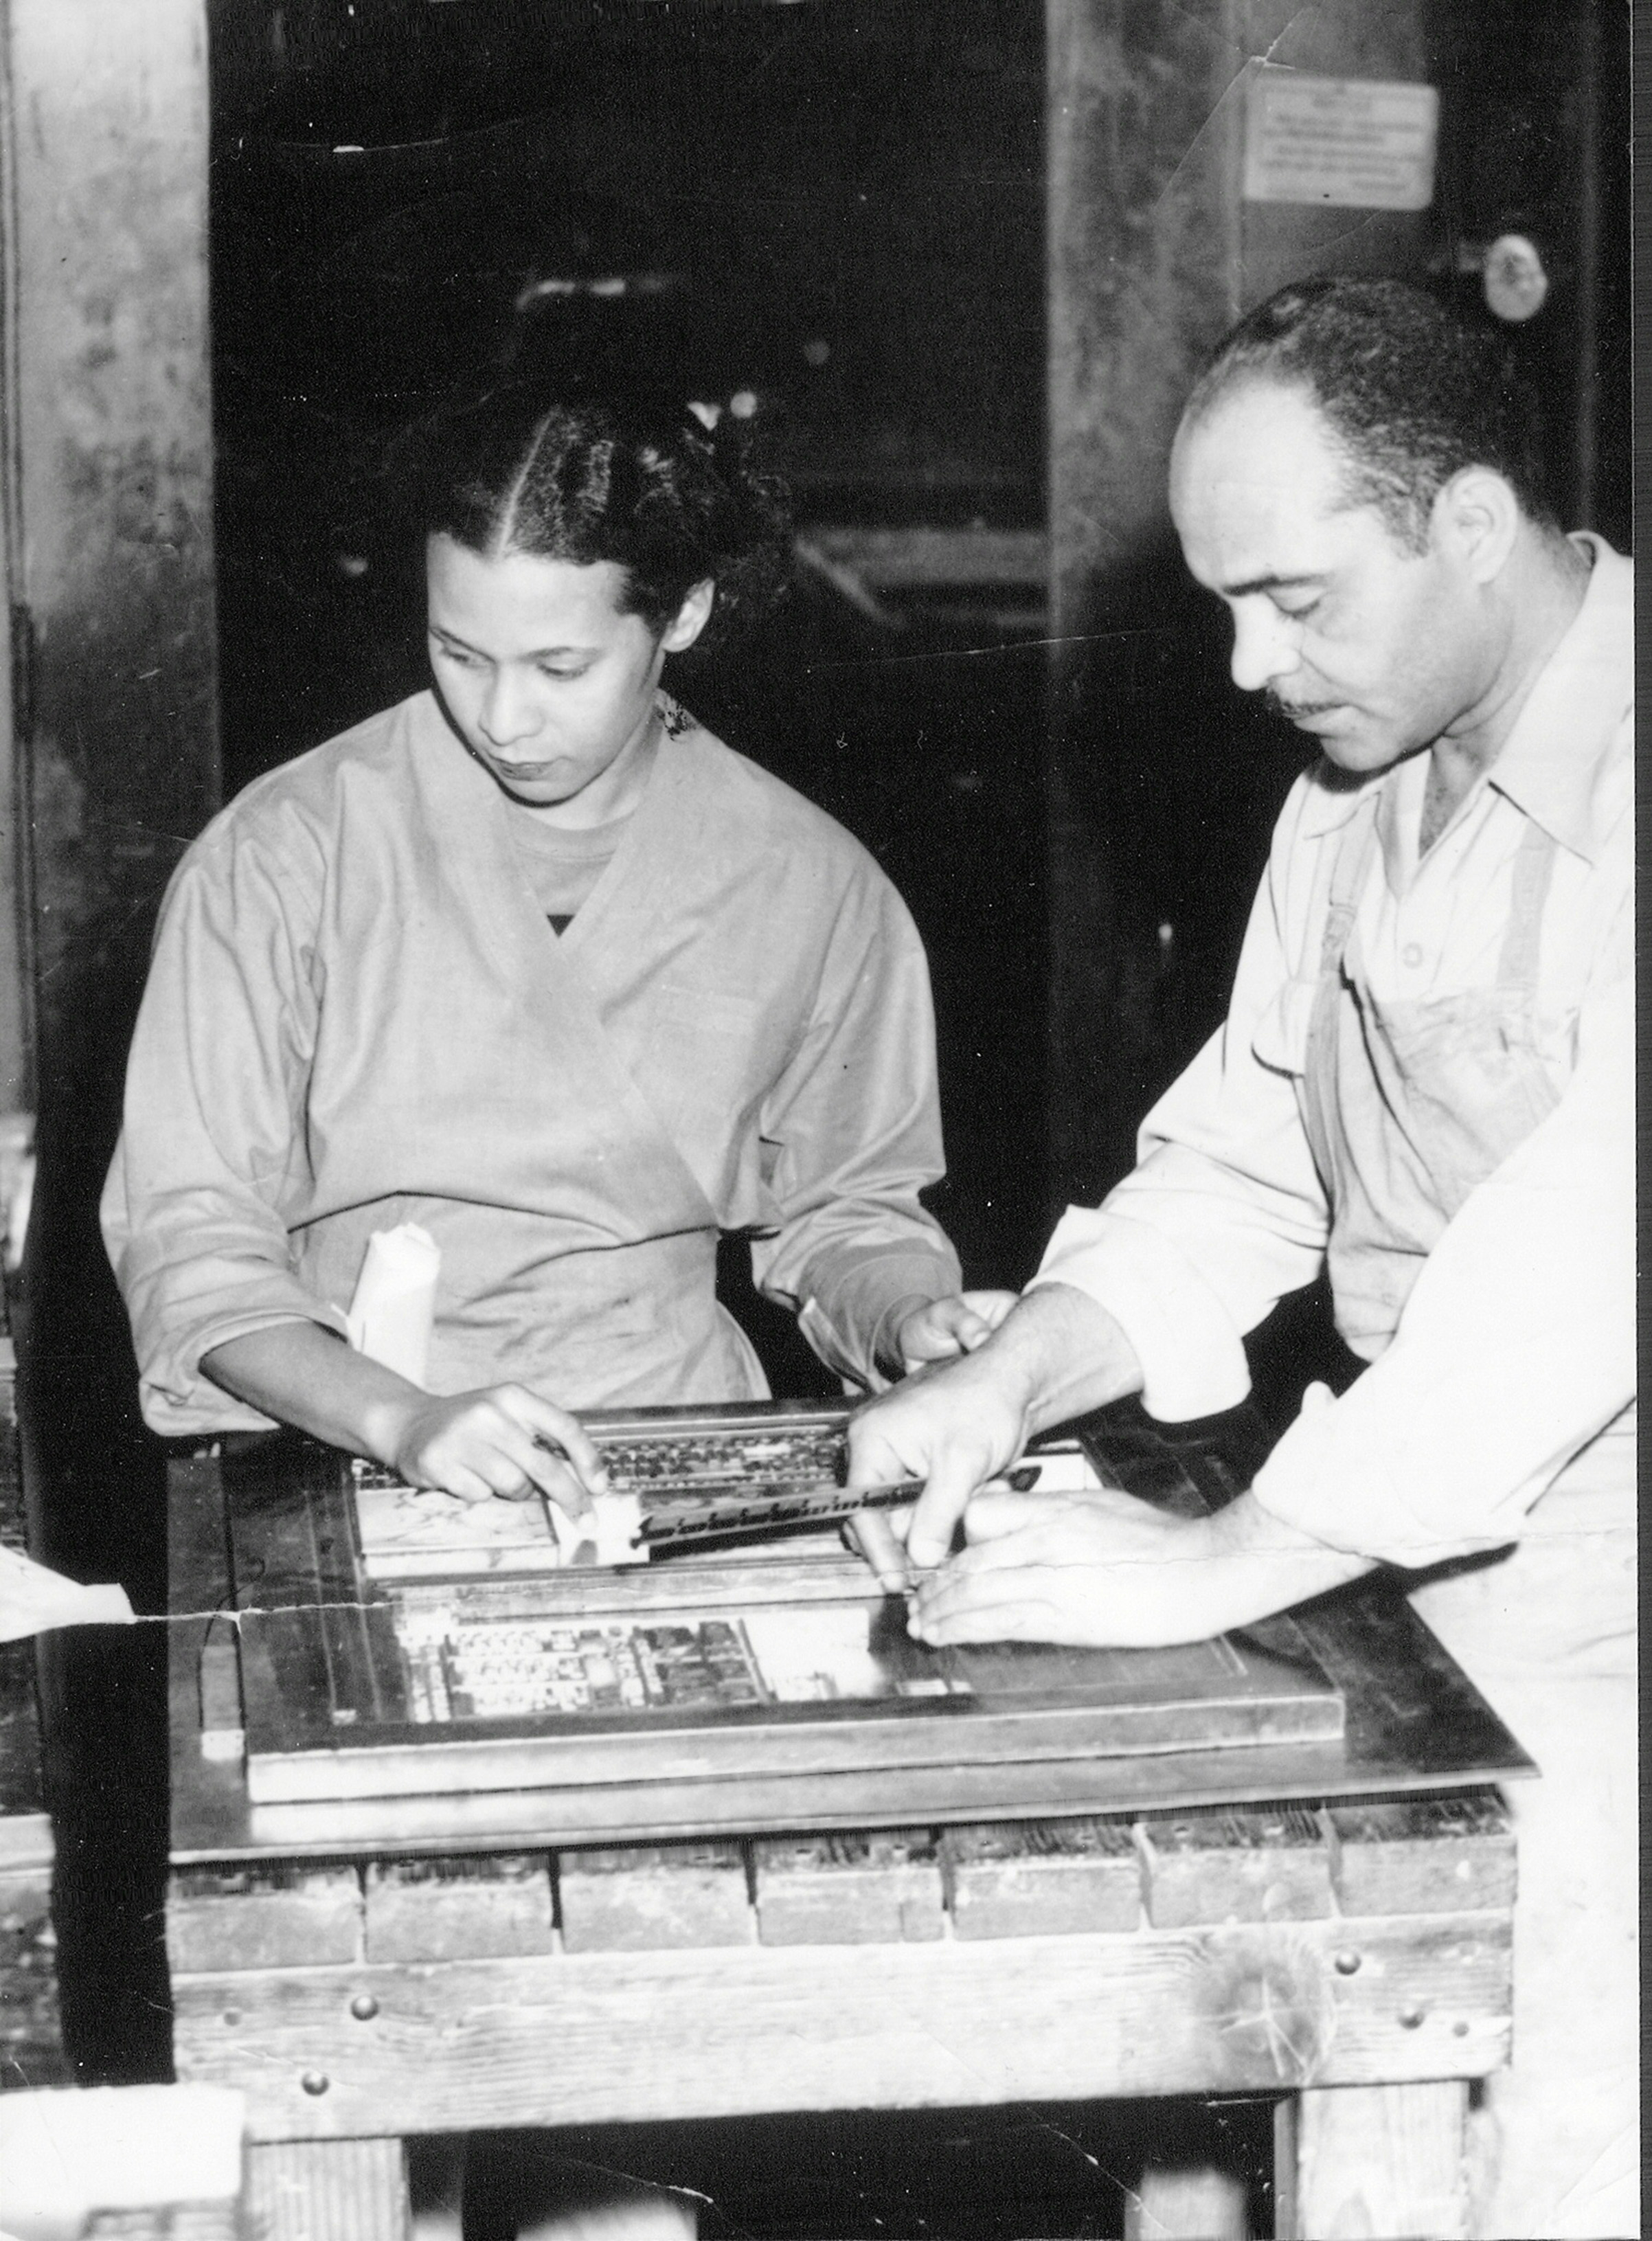 A circa 1950s photo of publishers of the Los Angeles Tribune Lucius and Almena Lomax, parents of Michael Lomax, setting the typeface to print the newspaper.